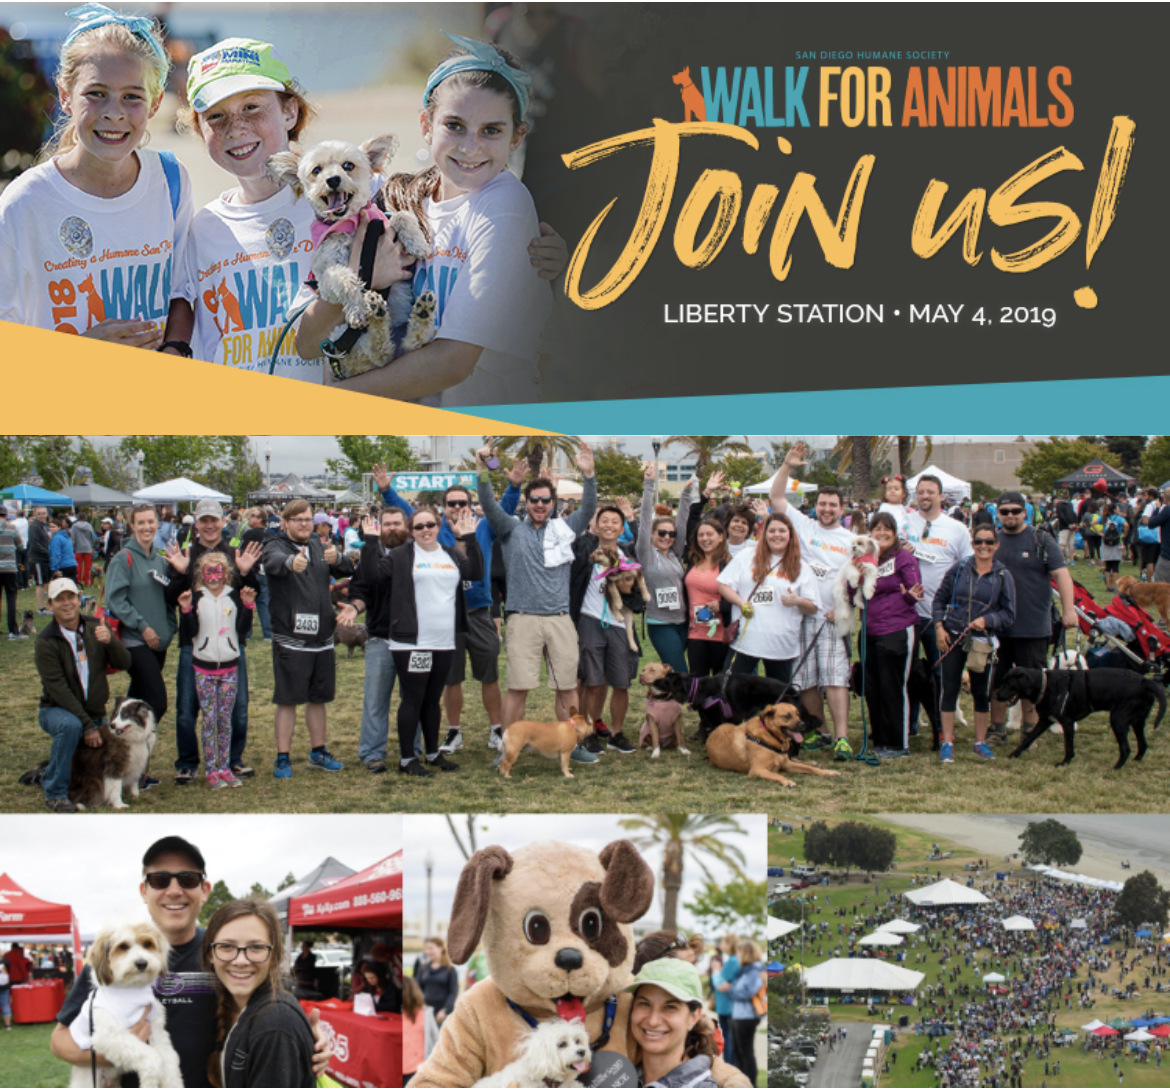 Save 50% on registration for the San Diego Humane Society's Walk For Animals on May 4!